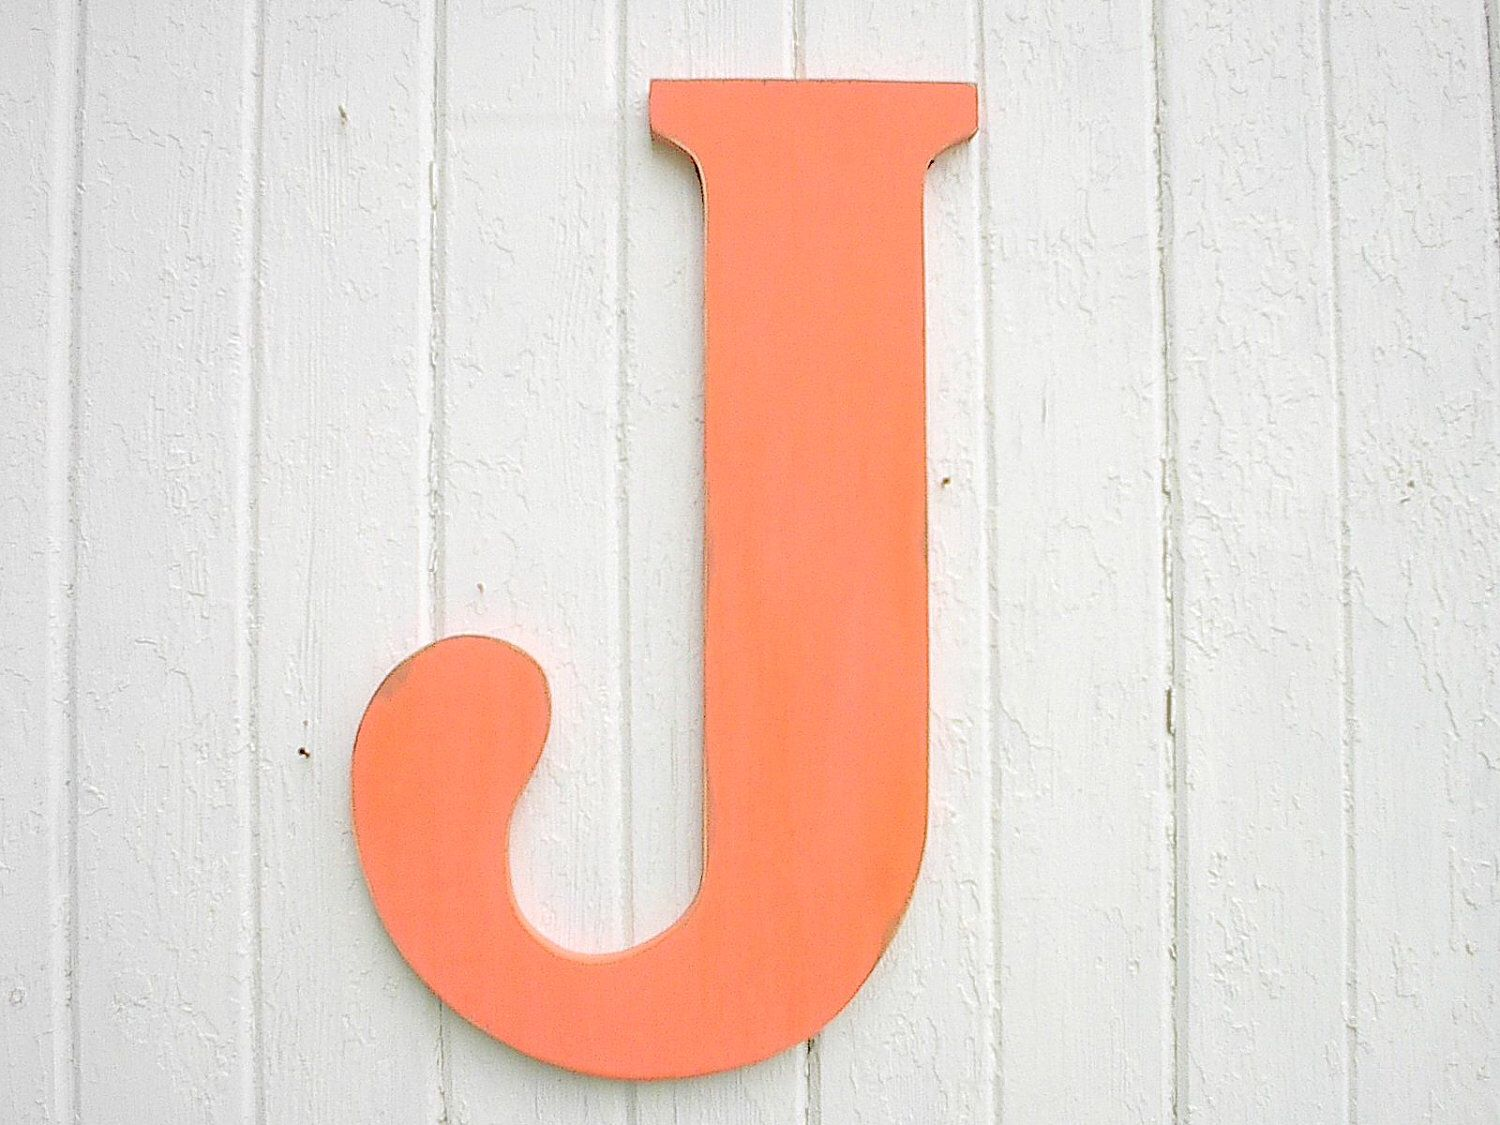 12 Inch Galvanized Letters Rustic Shabby Chic Wedding Decor Wooden Initial Letter J Coral